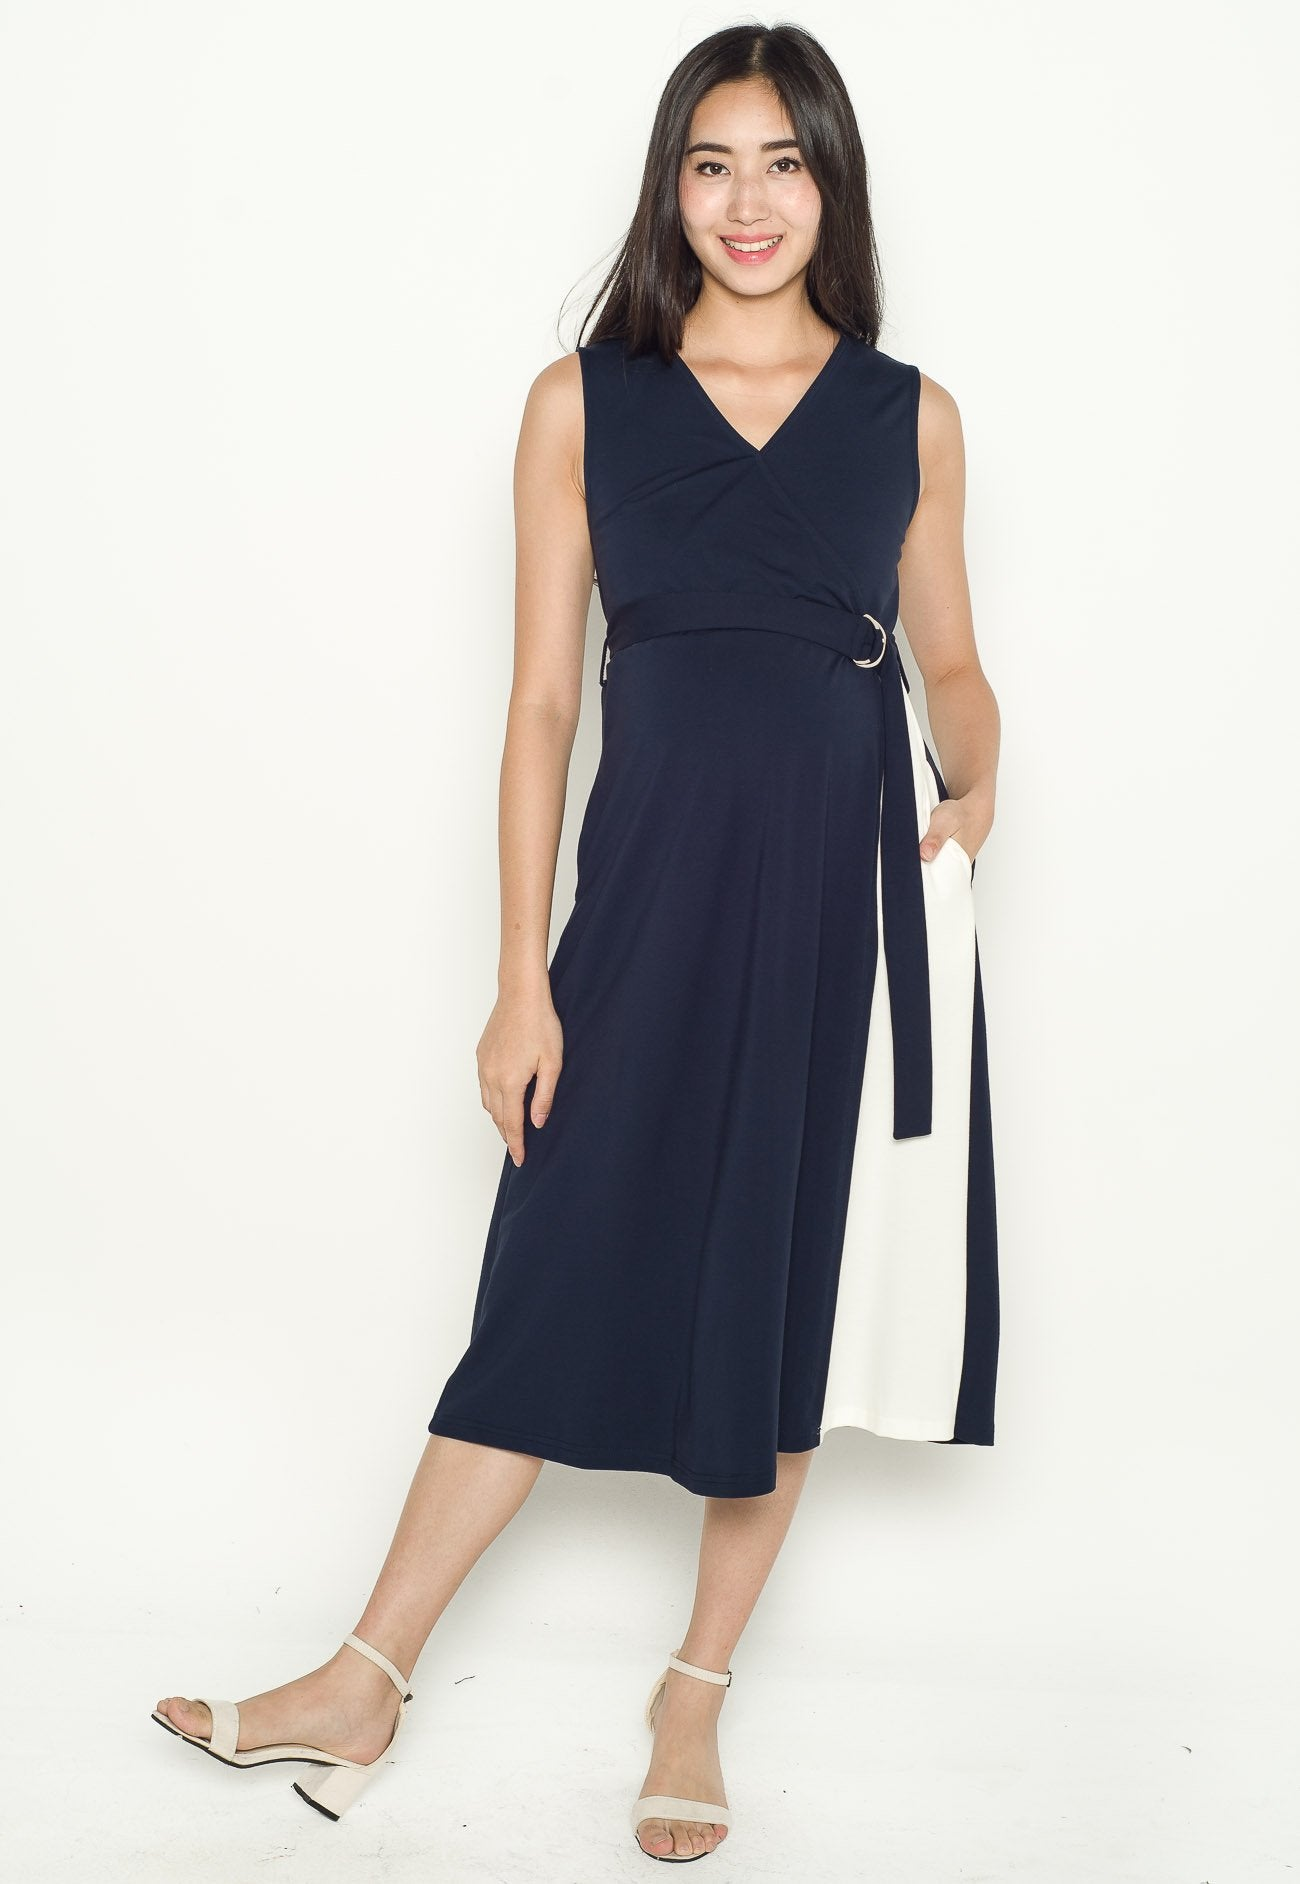 Ellie Belted Nursing Dress in Navy  by Jump Eat Cry - Maternity and nursing wear